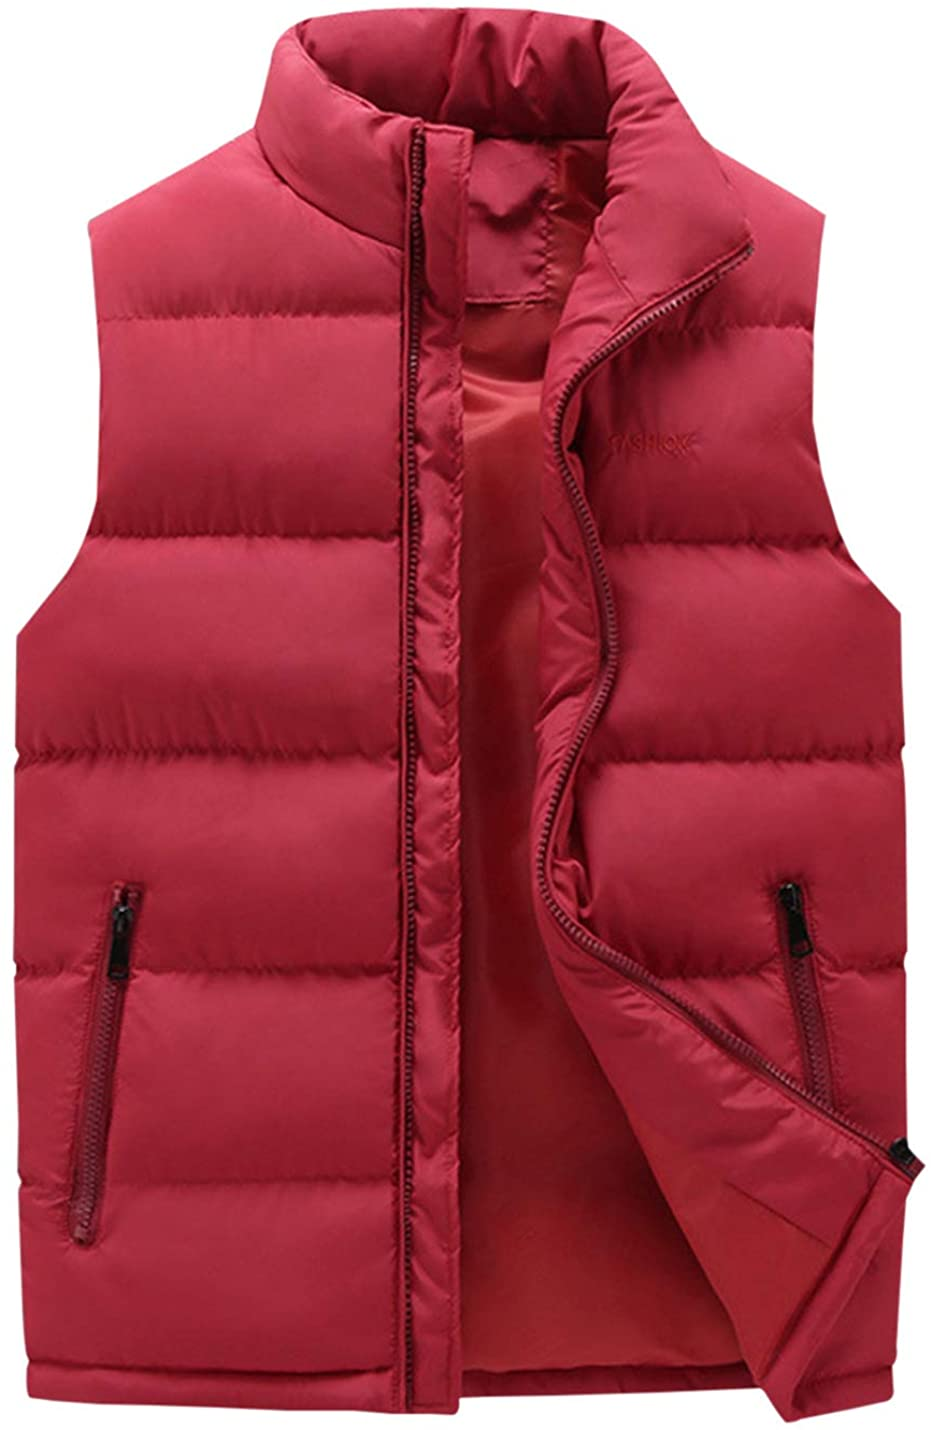 Gihuo Men's Winter Quilted Padded Puffer Vest Body Warmer